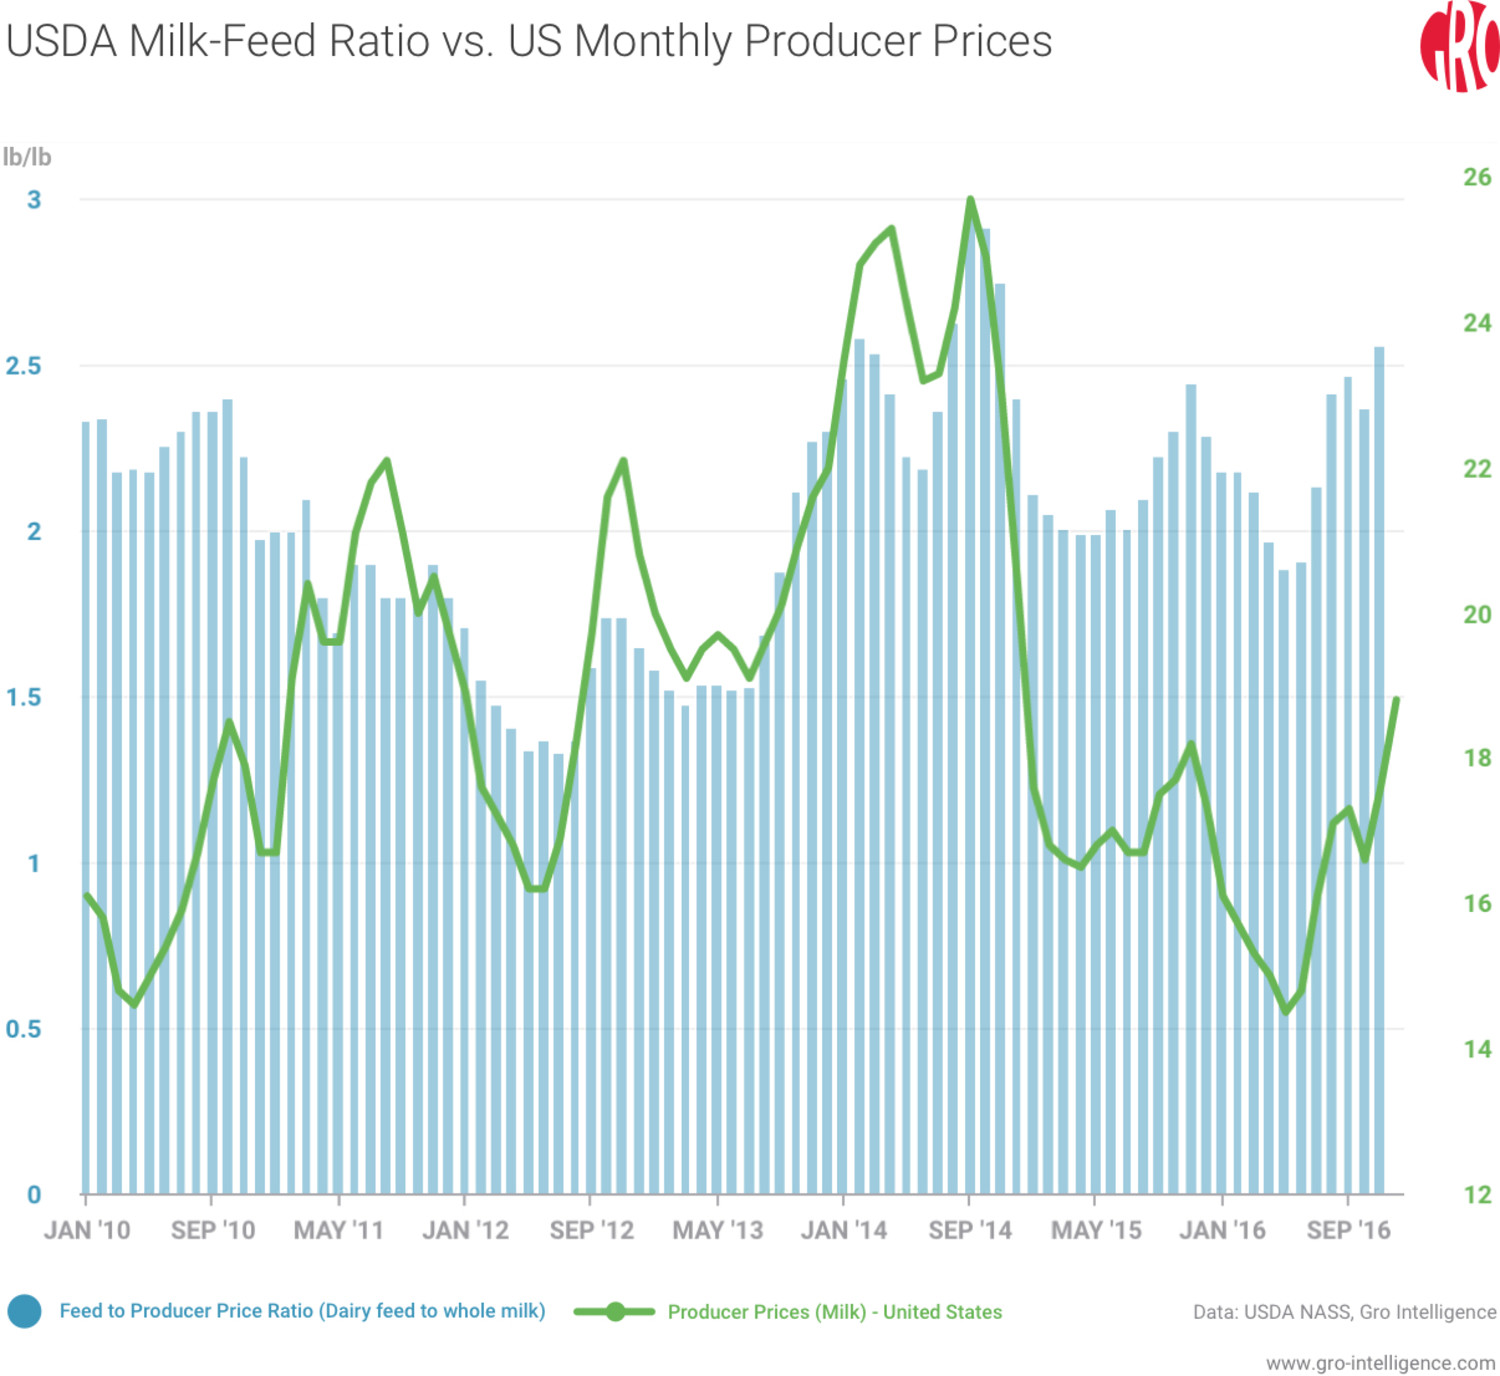 USDA Milk Feed Ratio